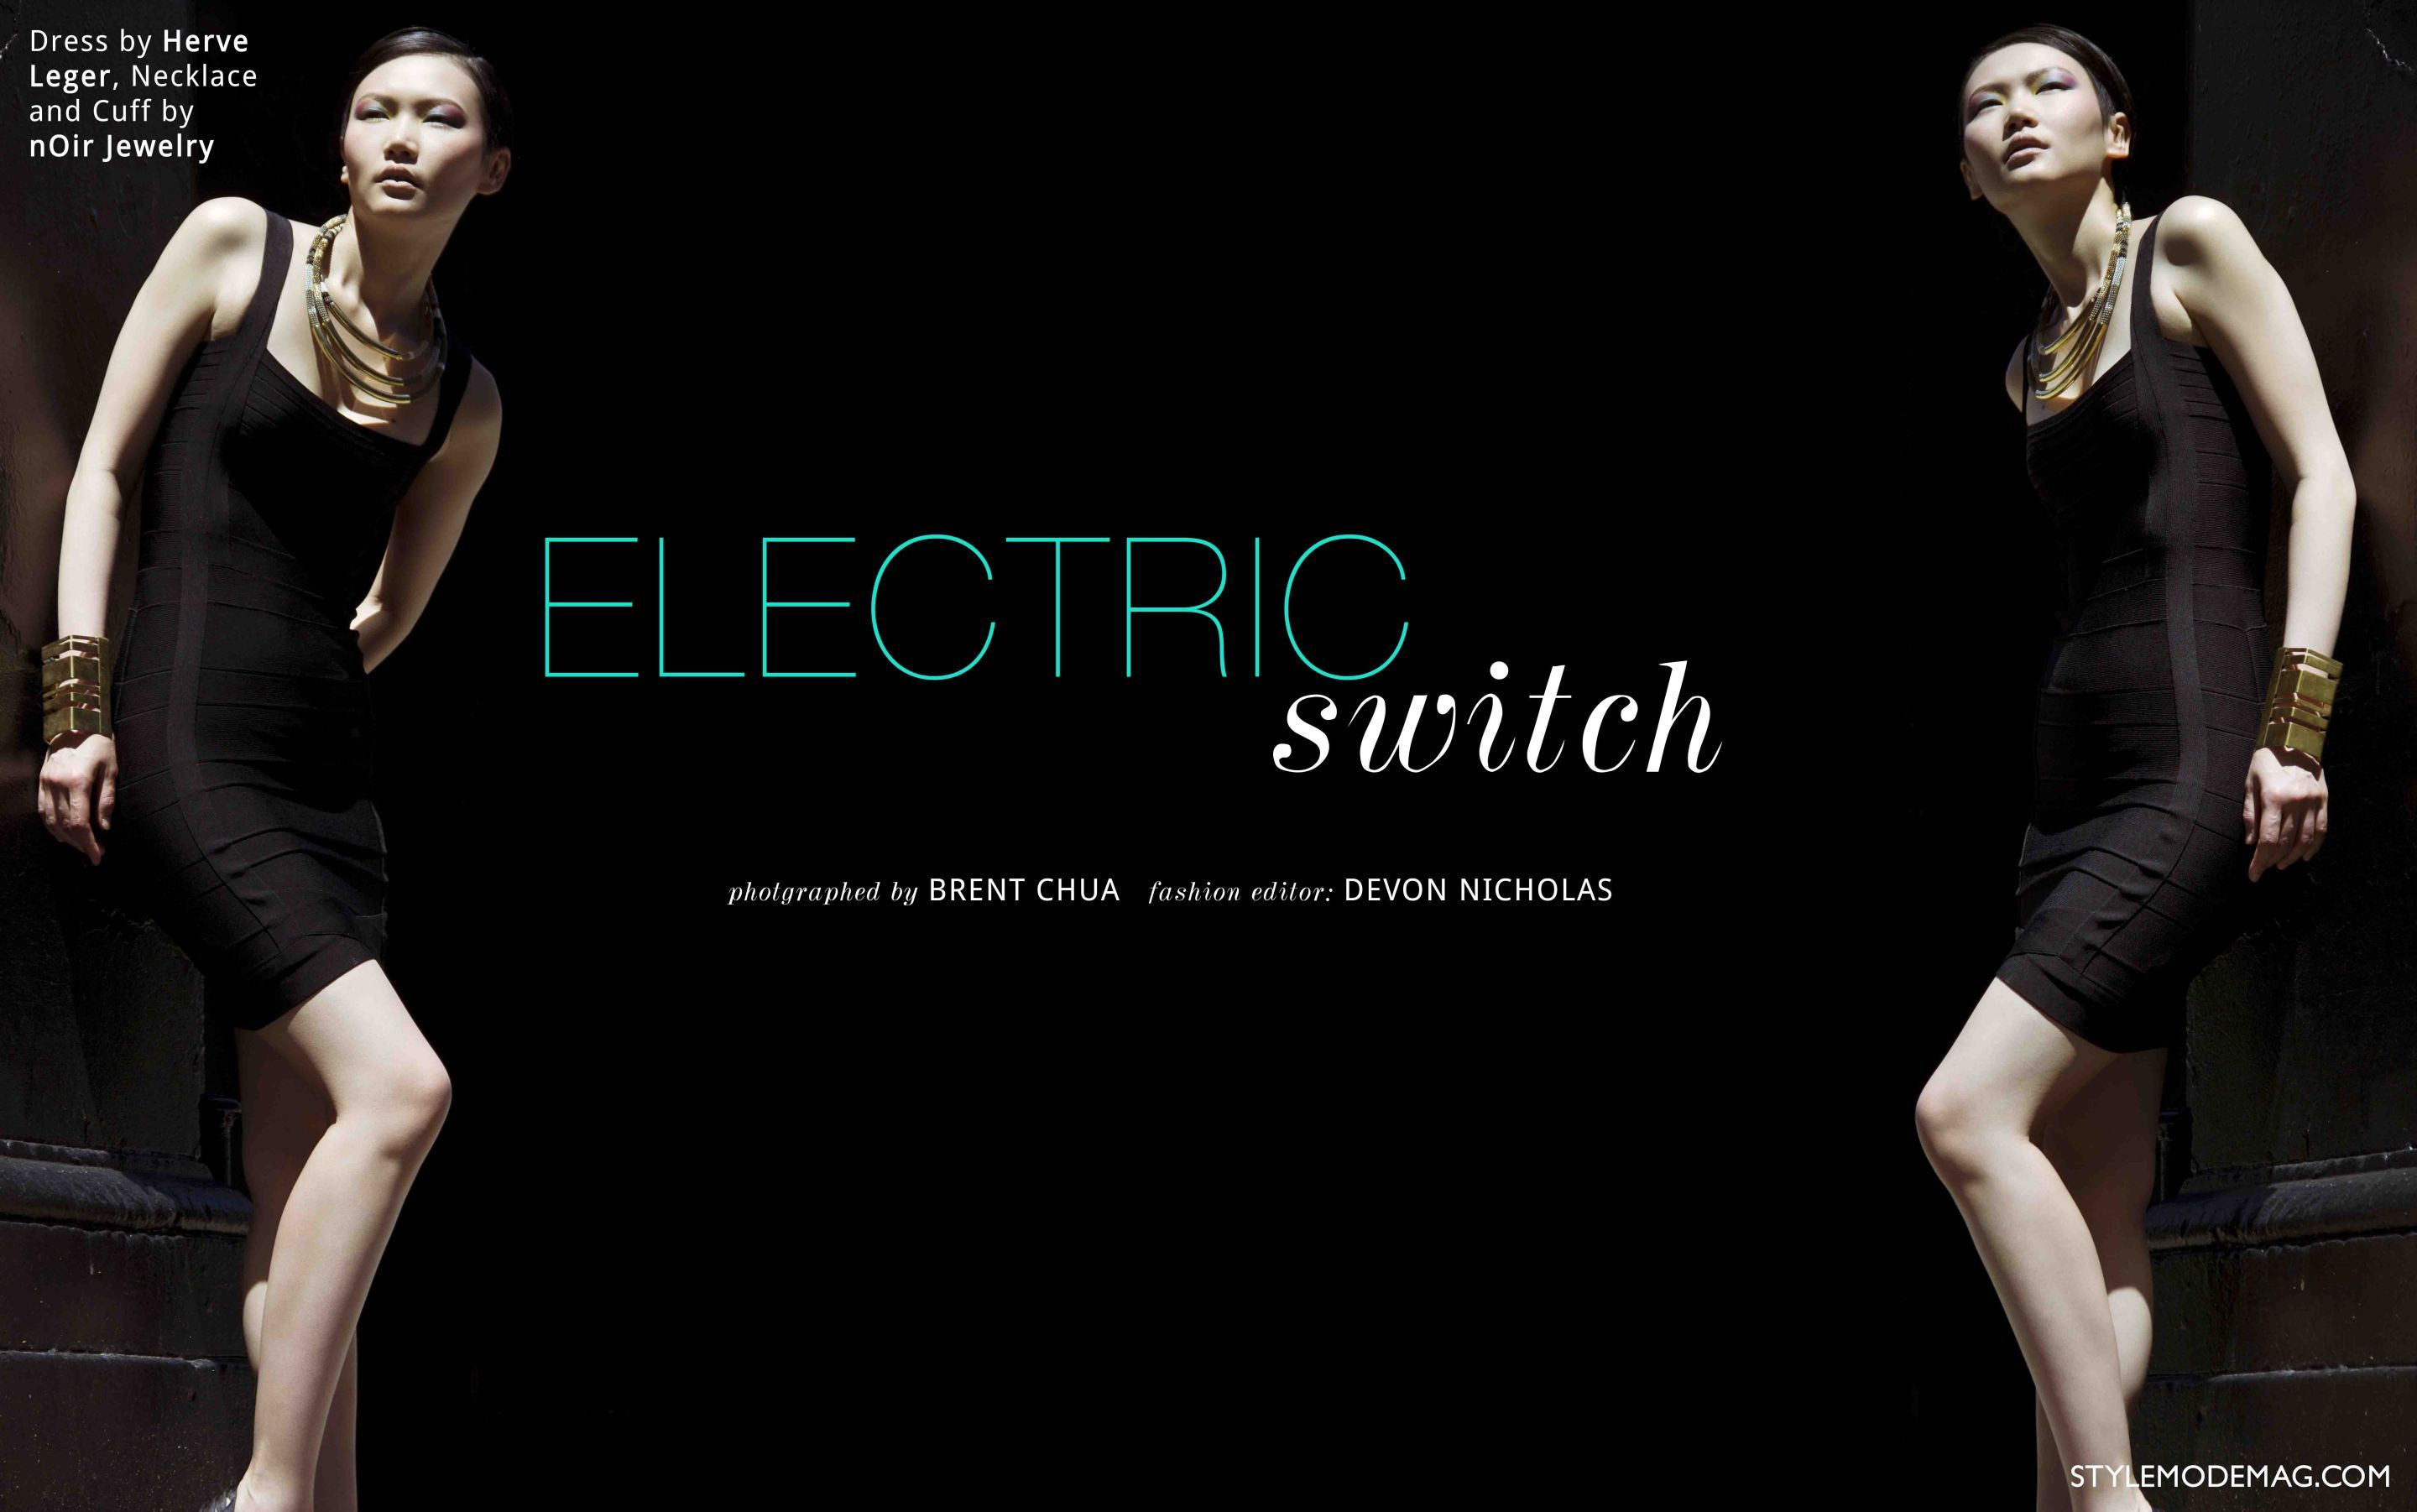 1electric_switch_1